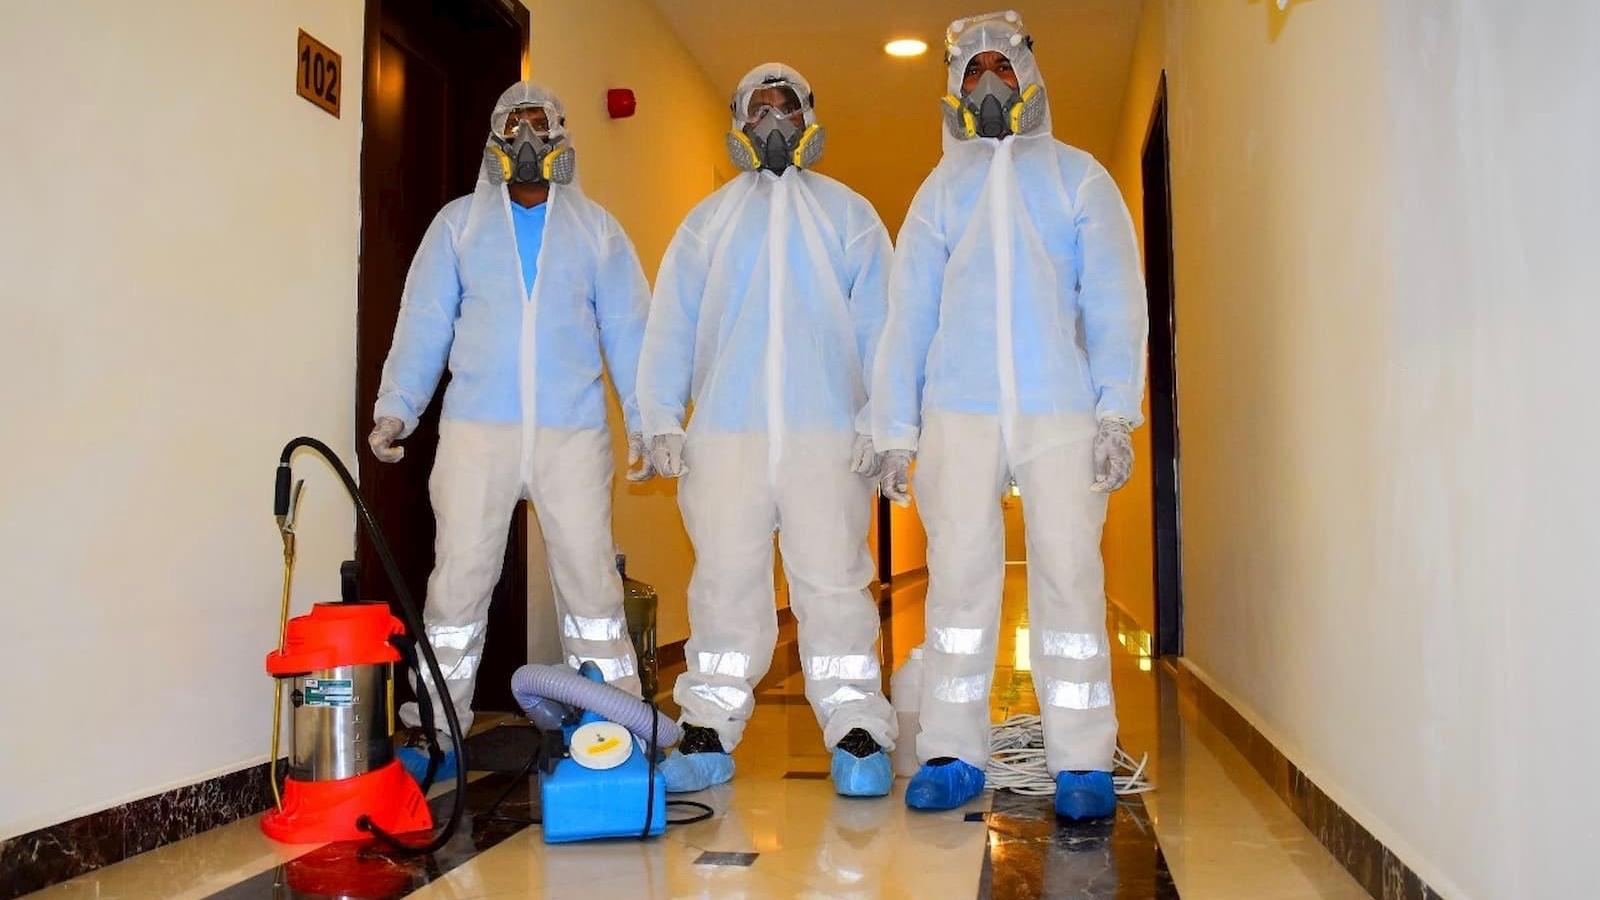 Keep your homes safe and virus-free with Sterikem Qatar's disinfection services and products